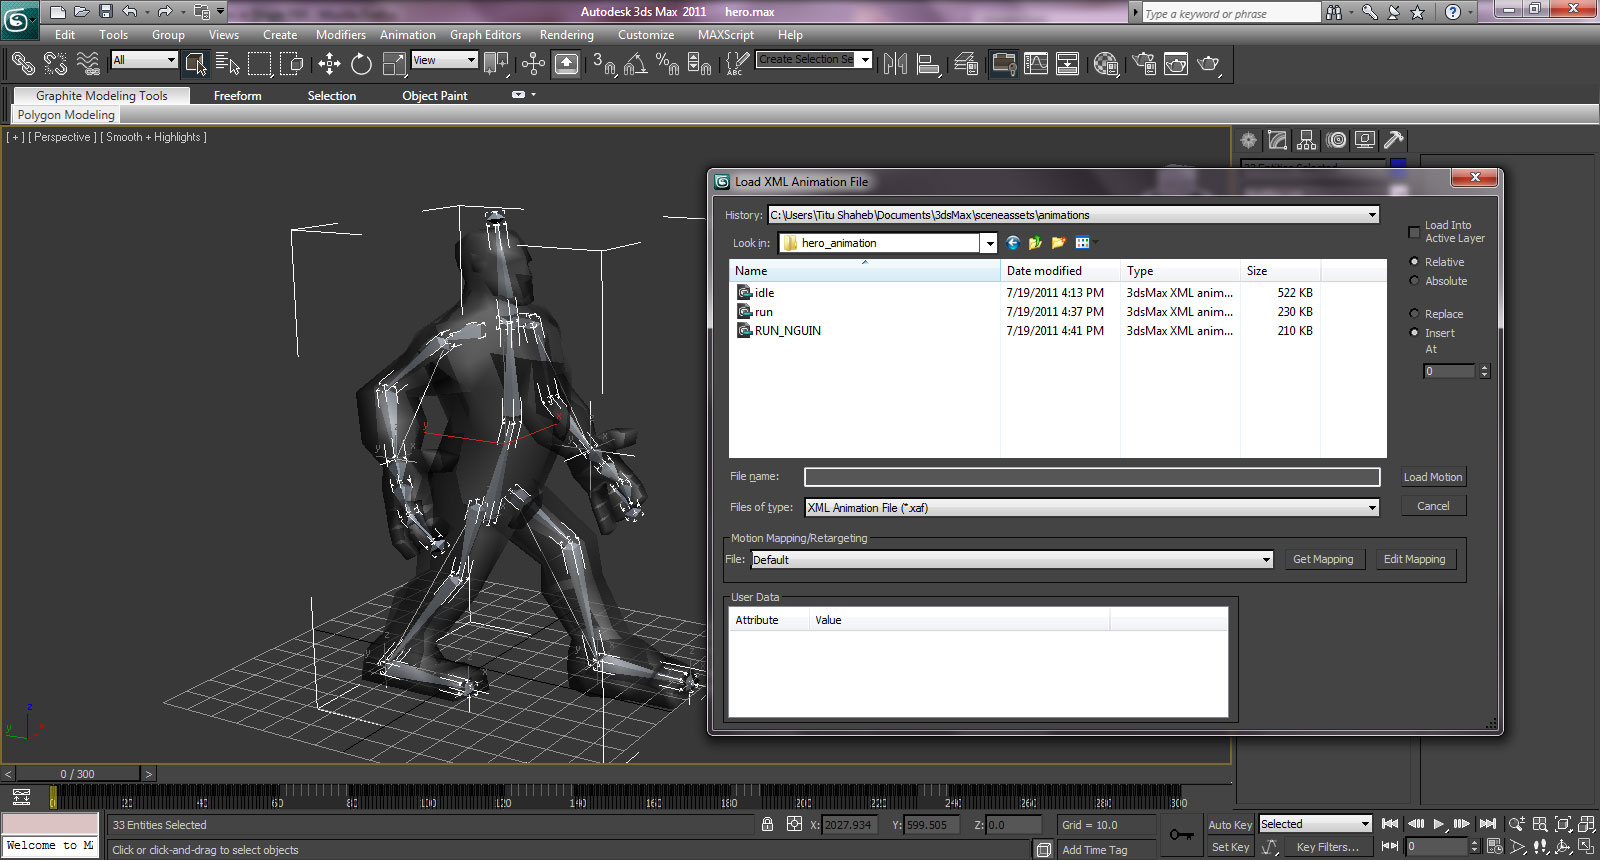 3DS Max: Export Multiple Animations in Single FBX - Unity Forum